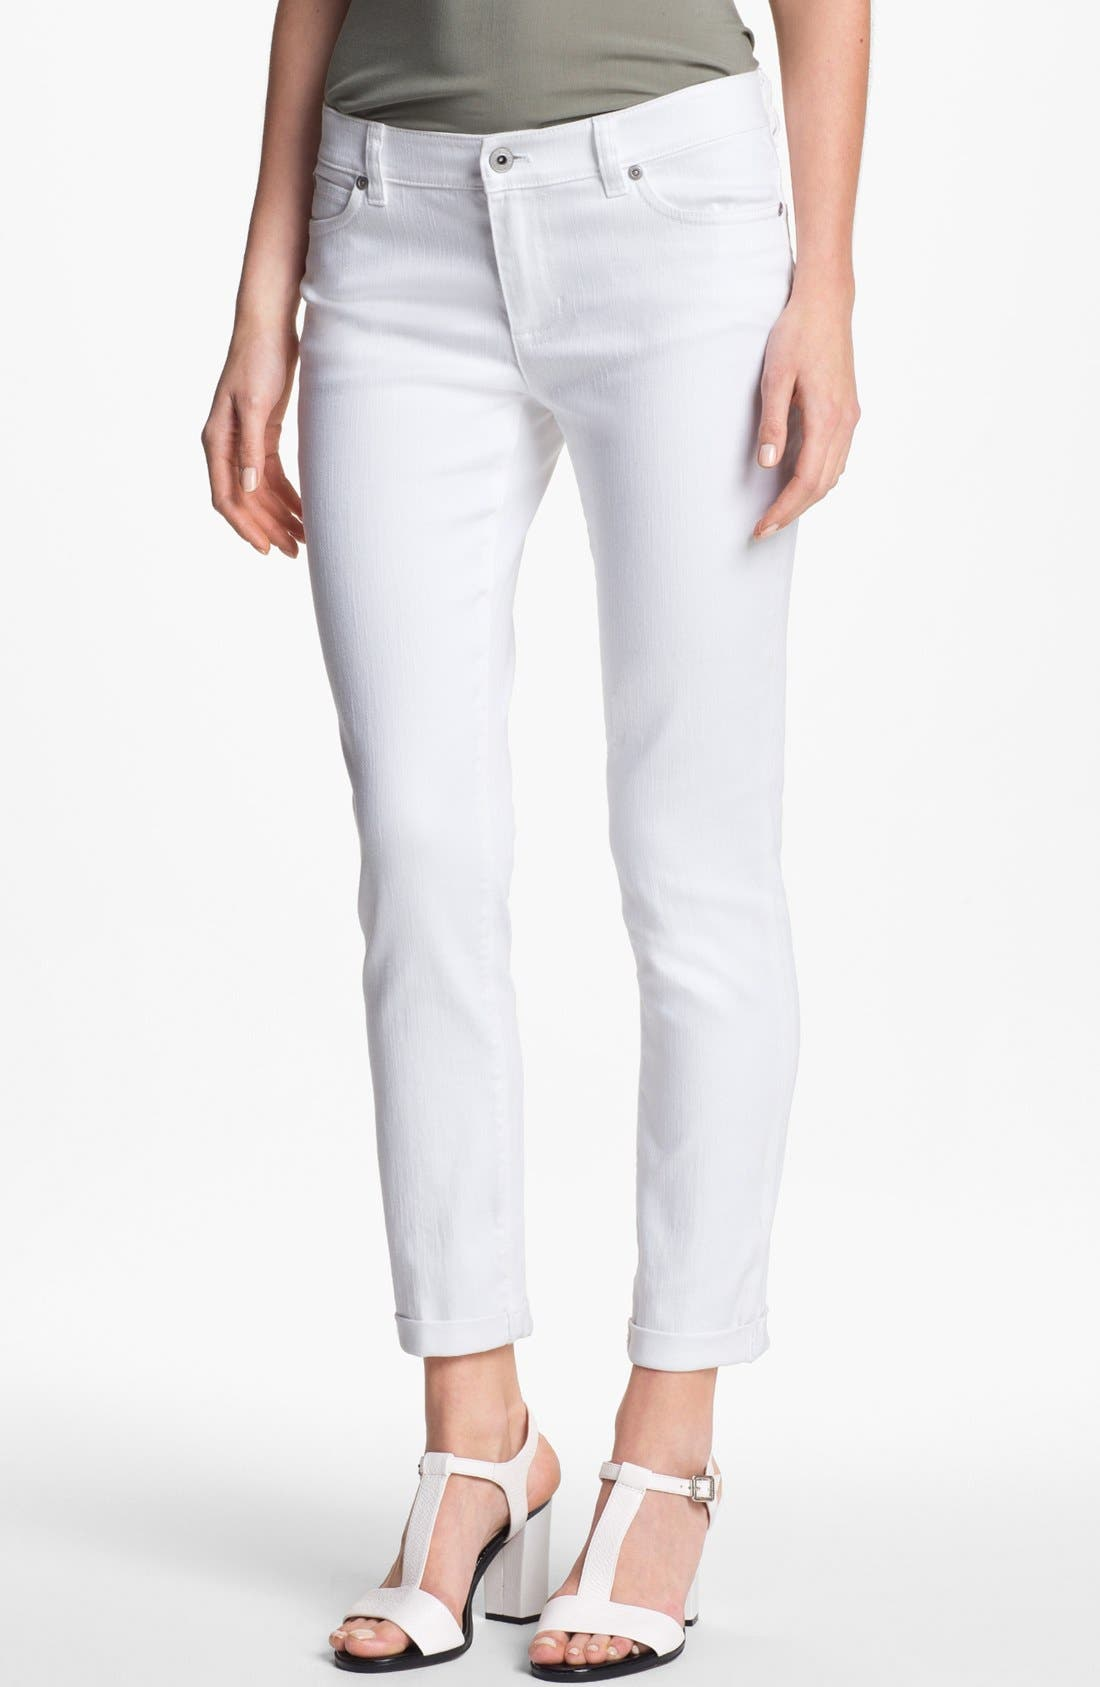 Main Image - Two by Vince Camuto Cuff Crop Jeans (Petite)